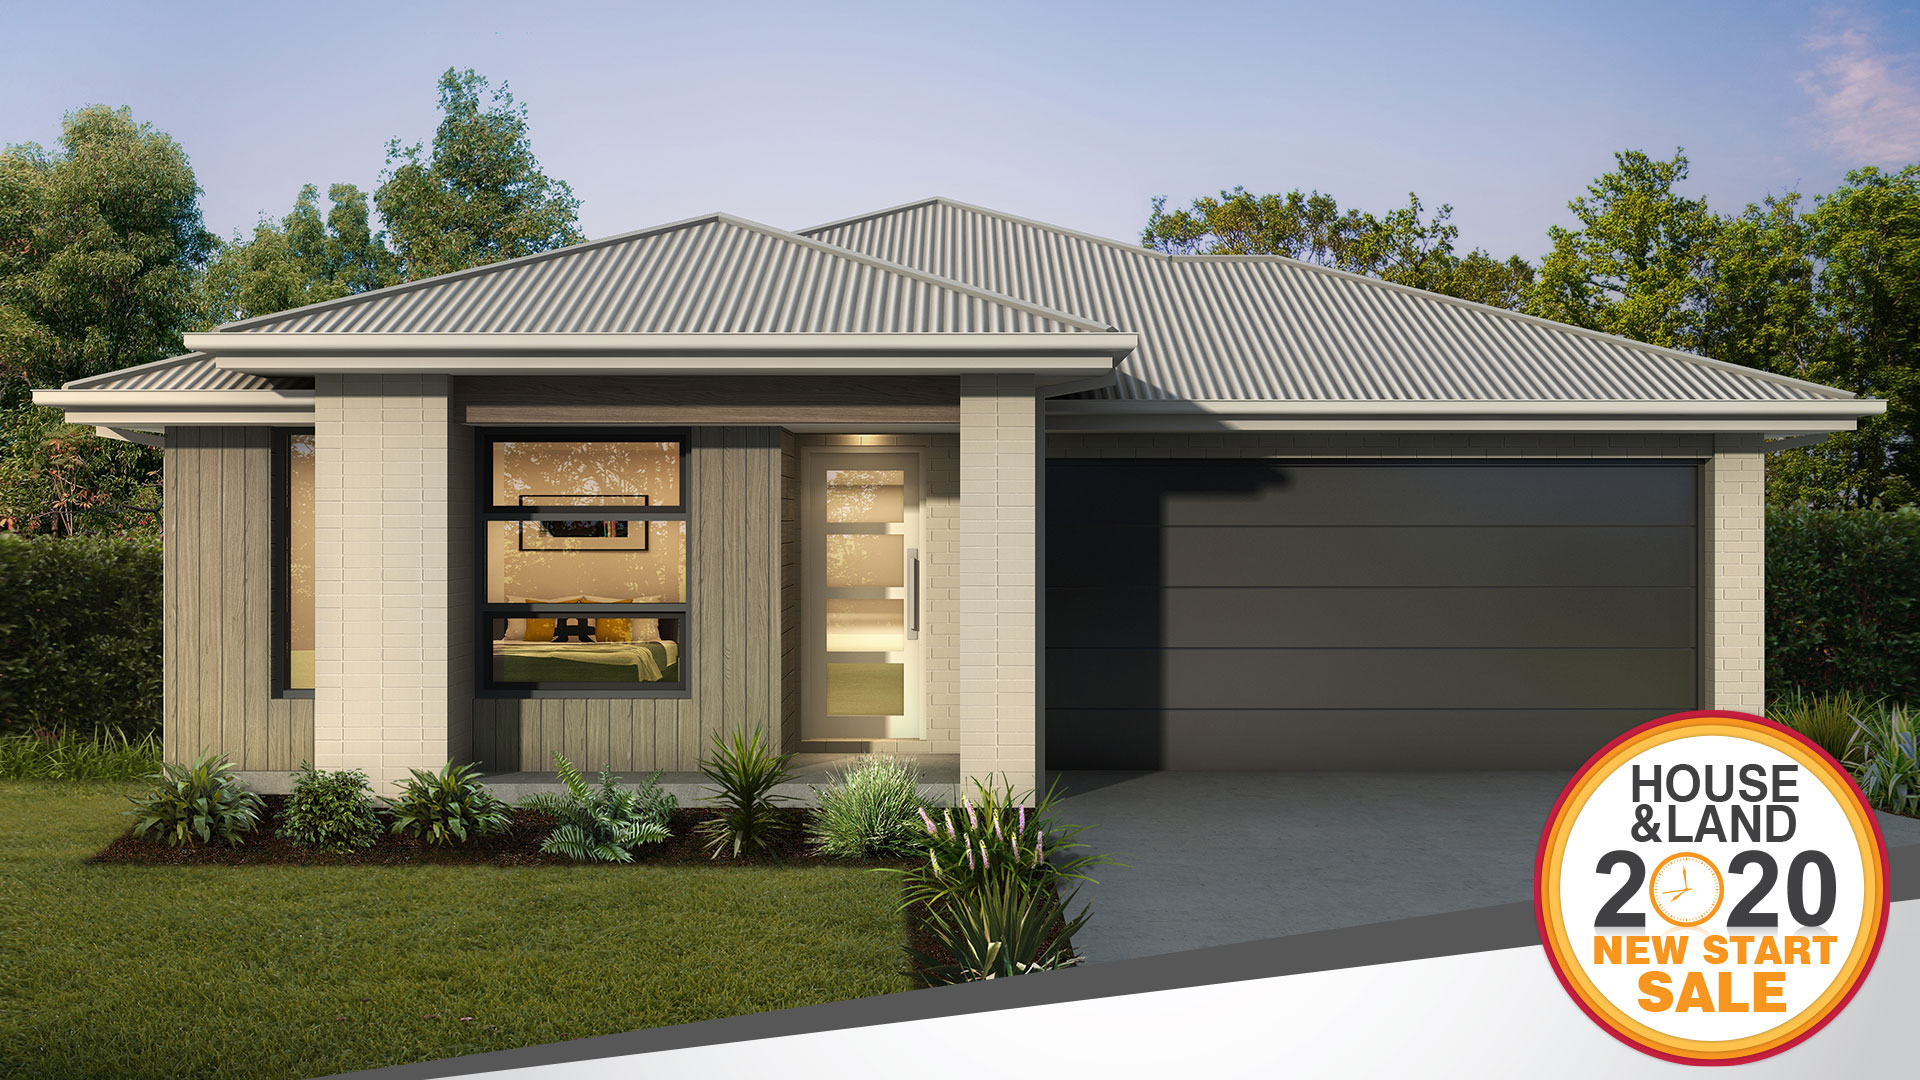 400 House Land New Start Sale WebsiteImages Kirra